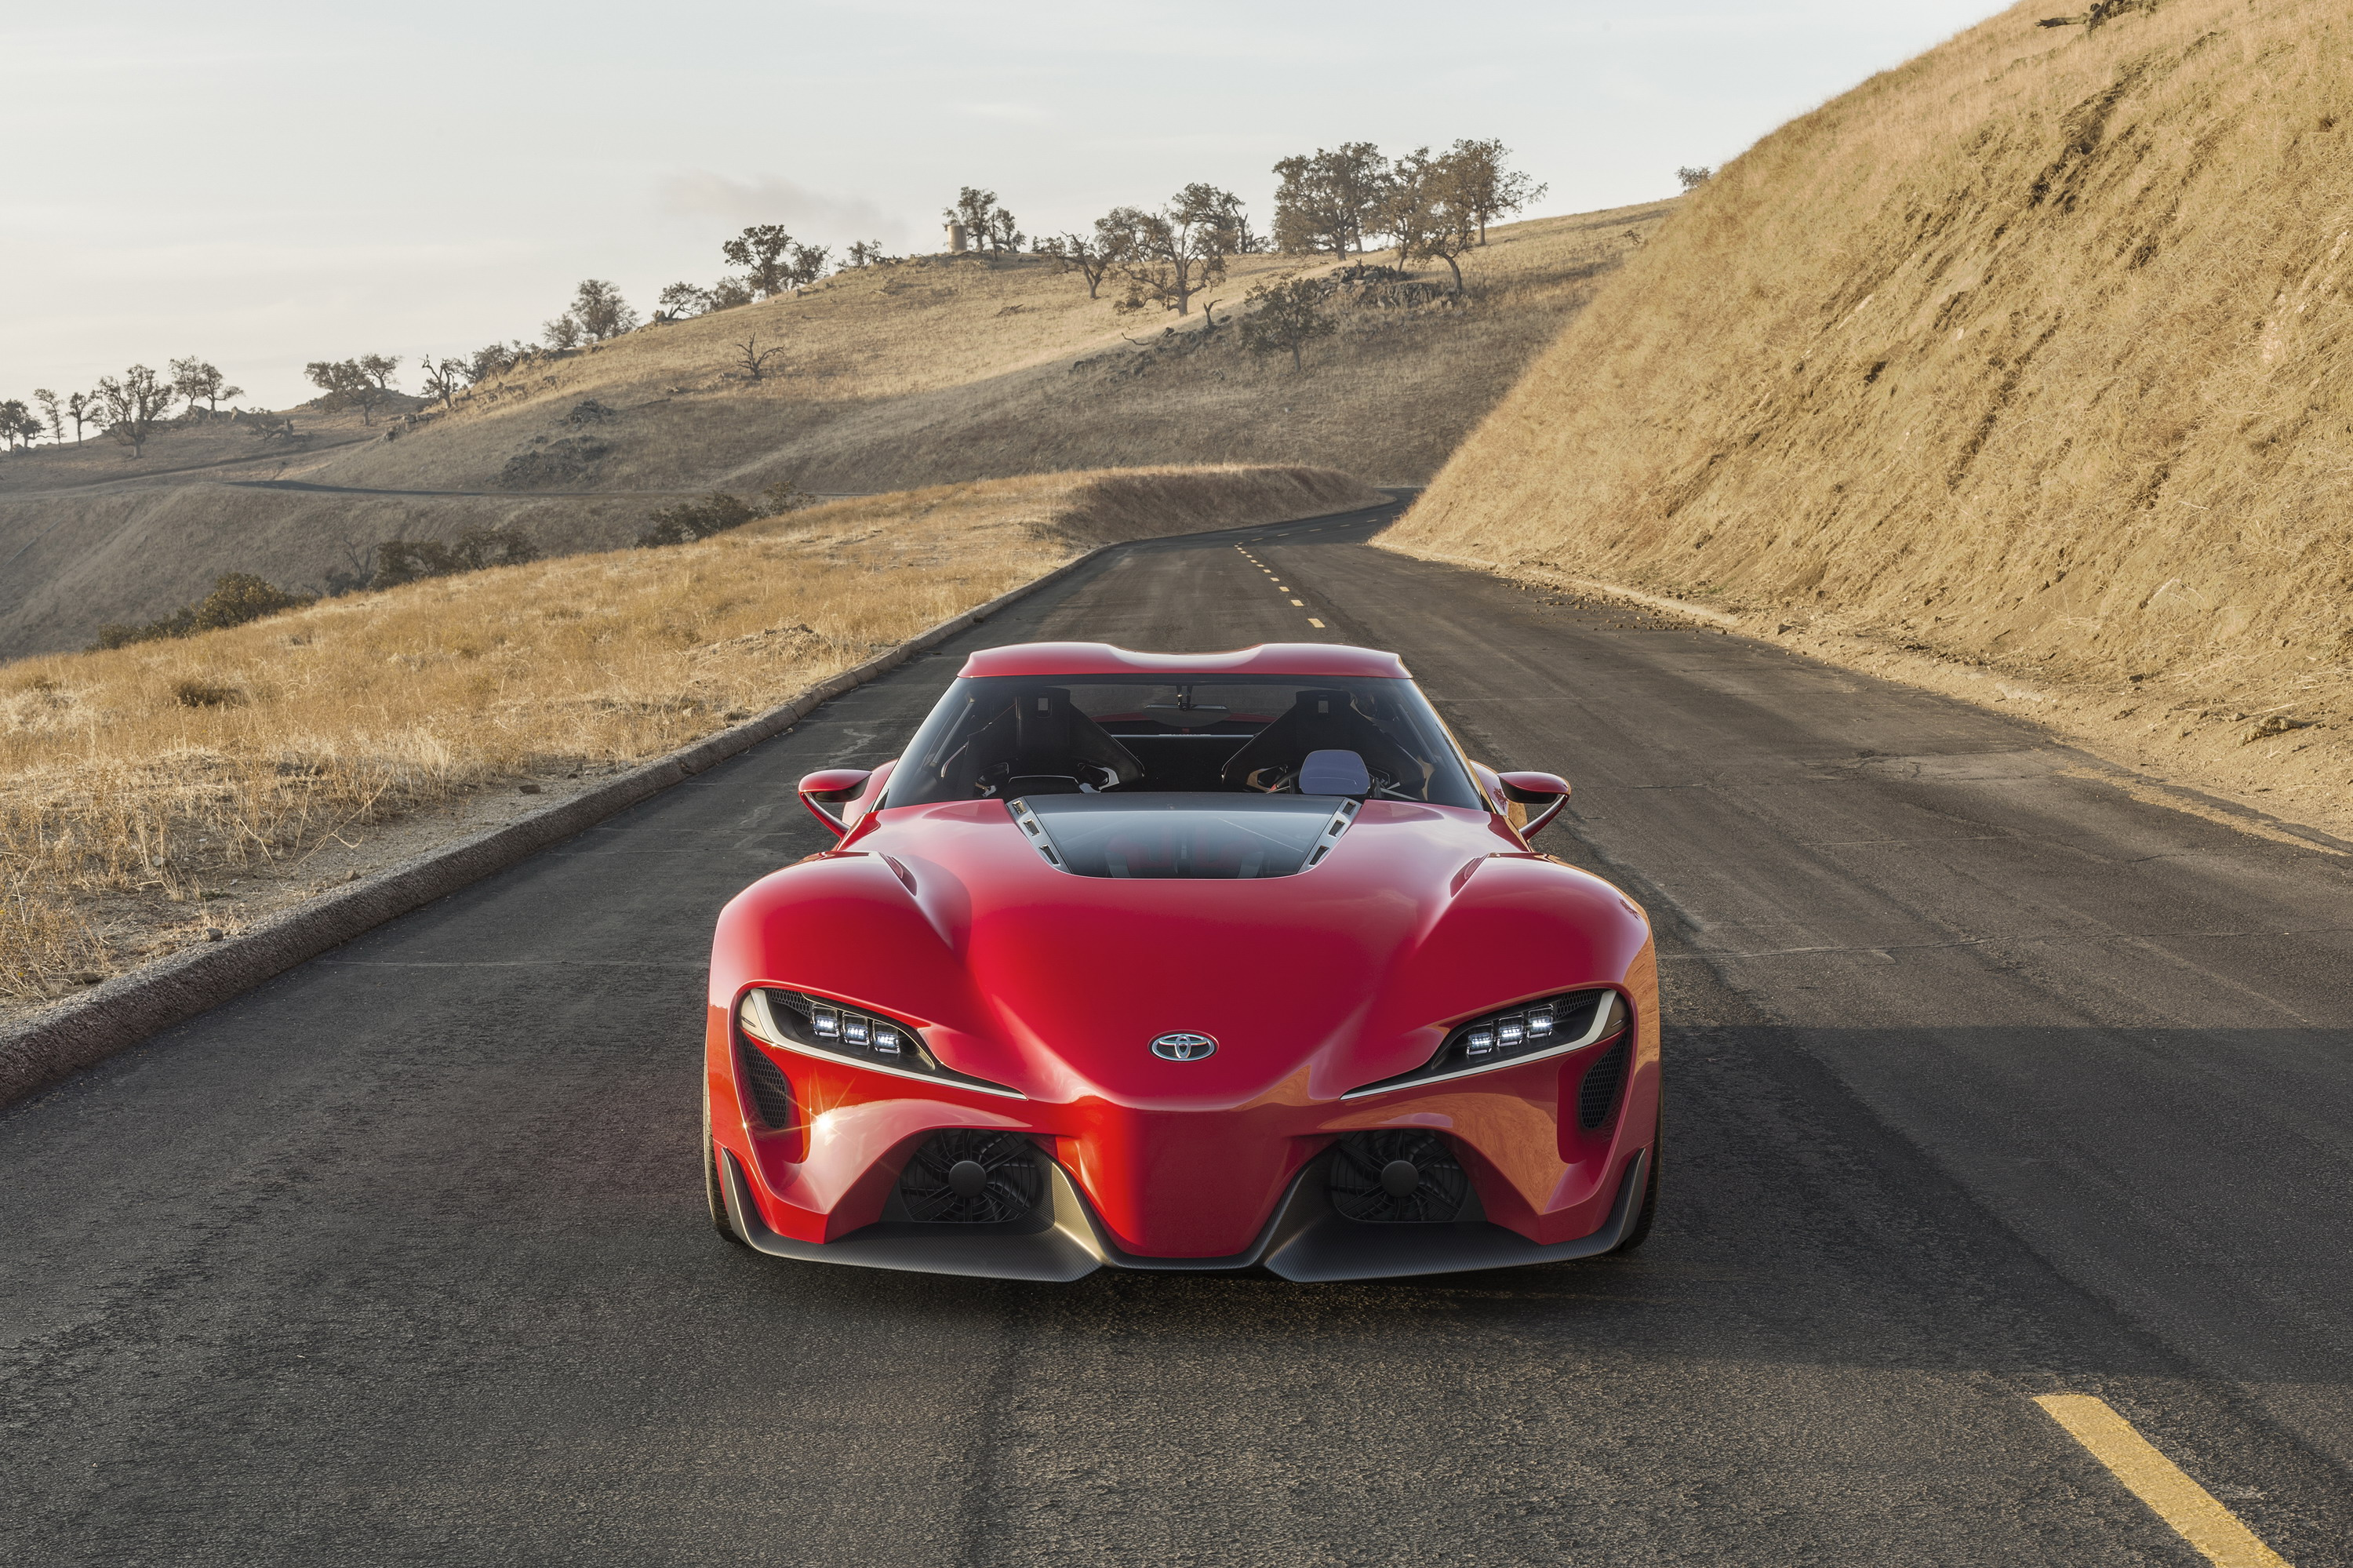 Toyota Ft 1 >> Visual Comparison The 2020 Toyota Supra Vs The Toyota Ft 1 Top Speed